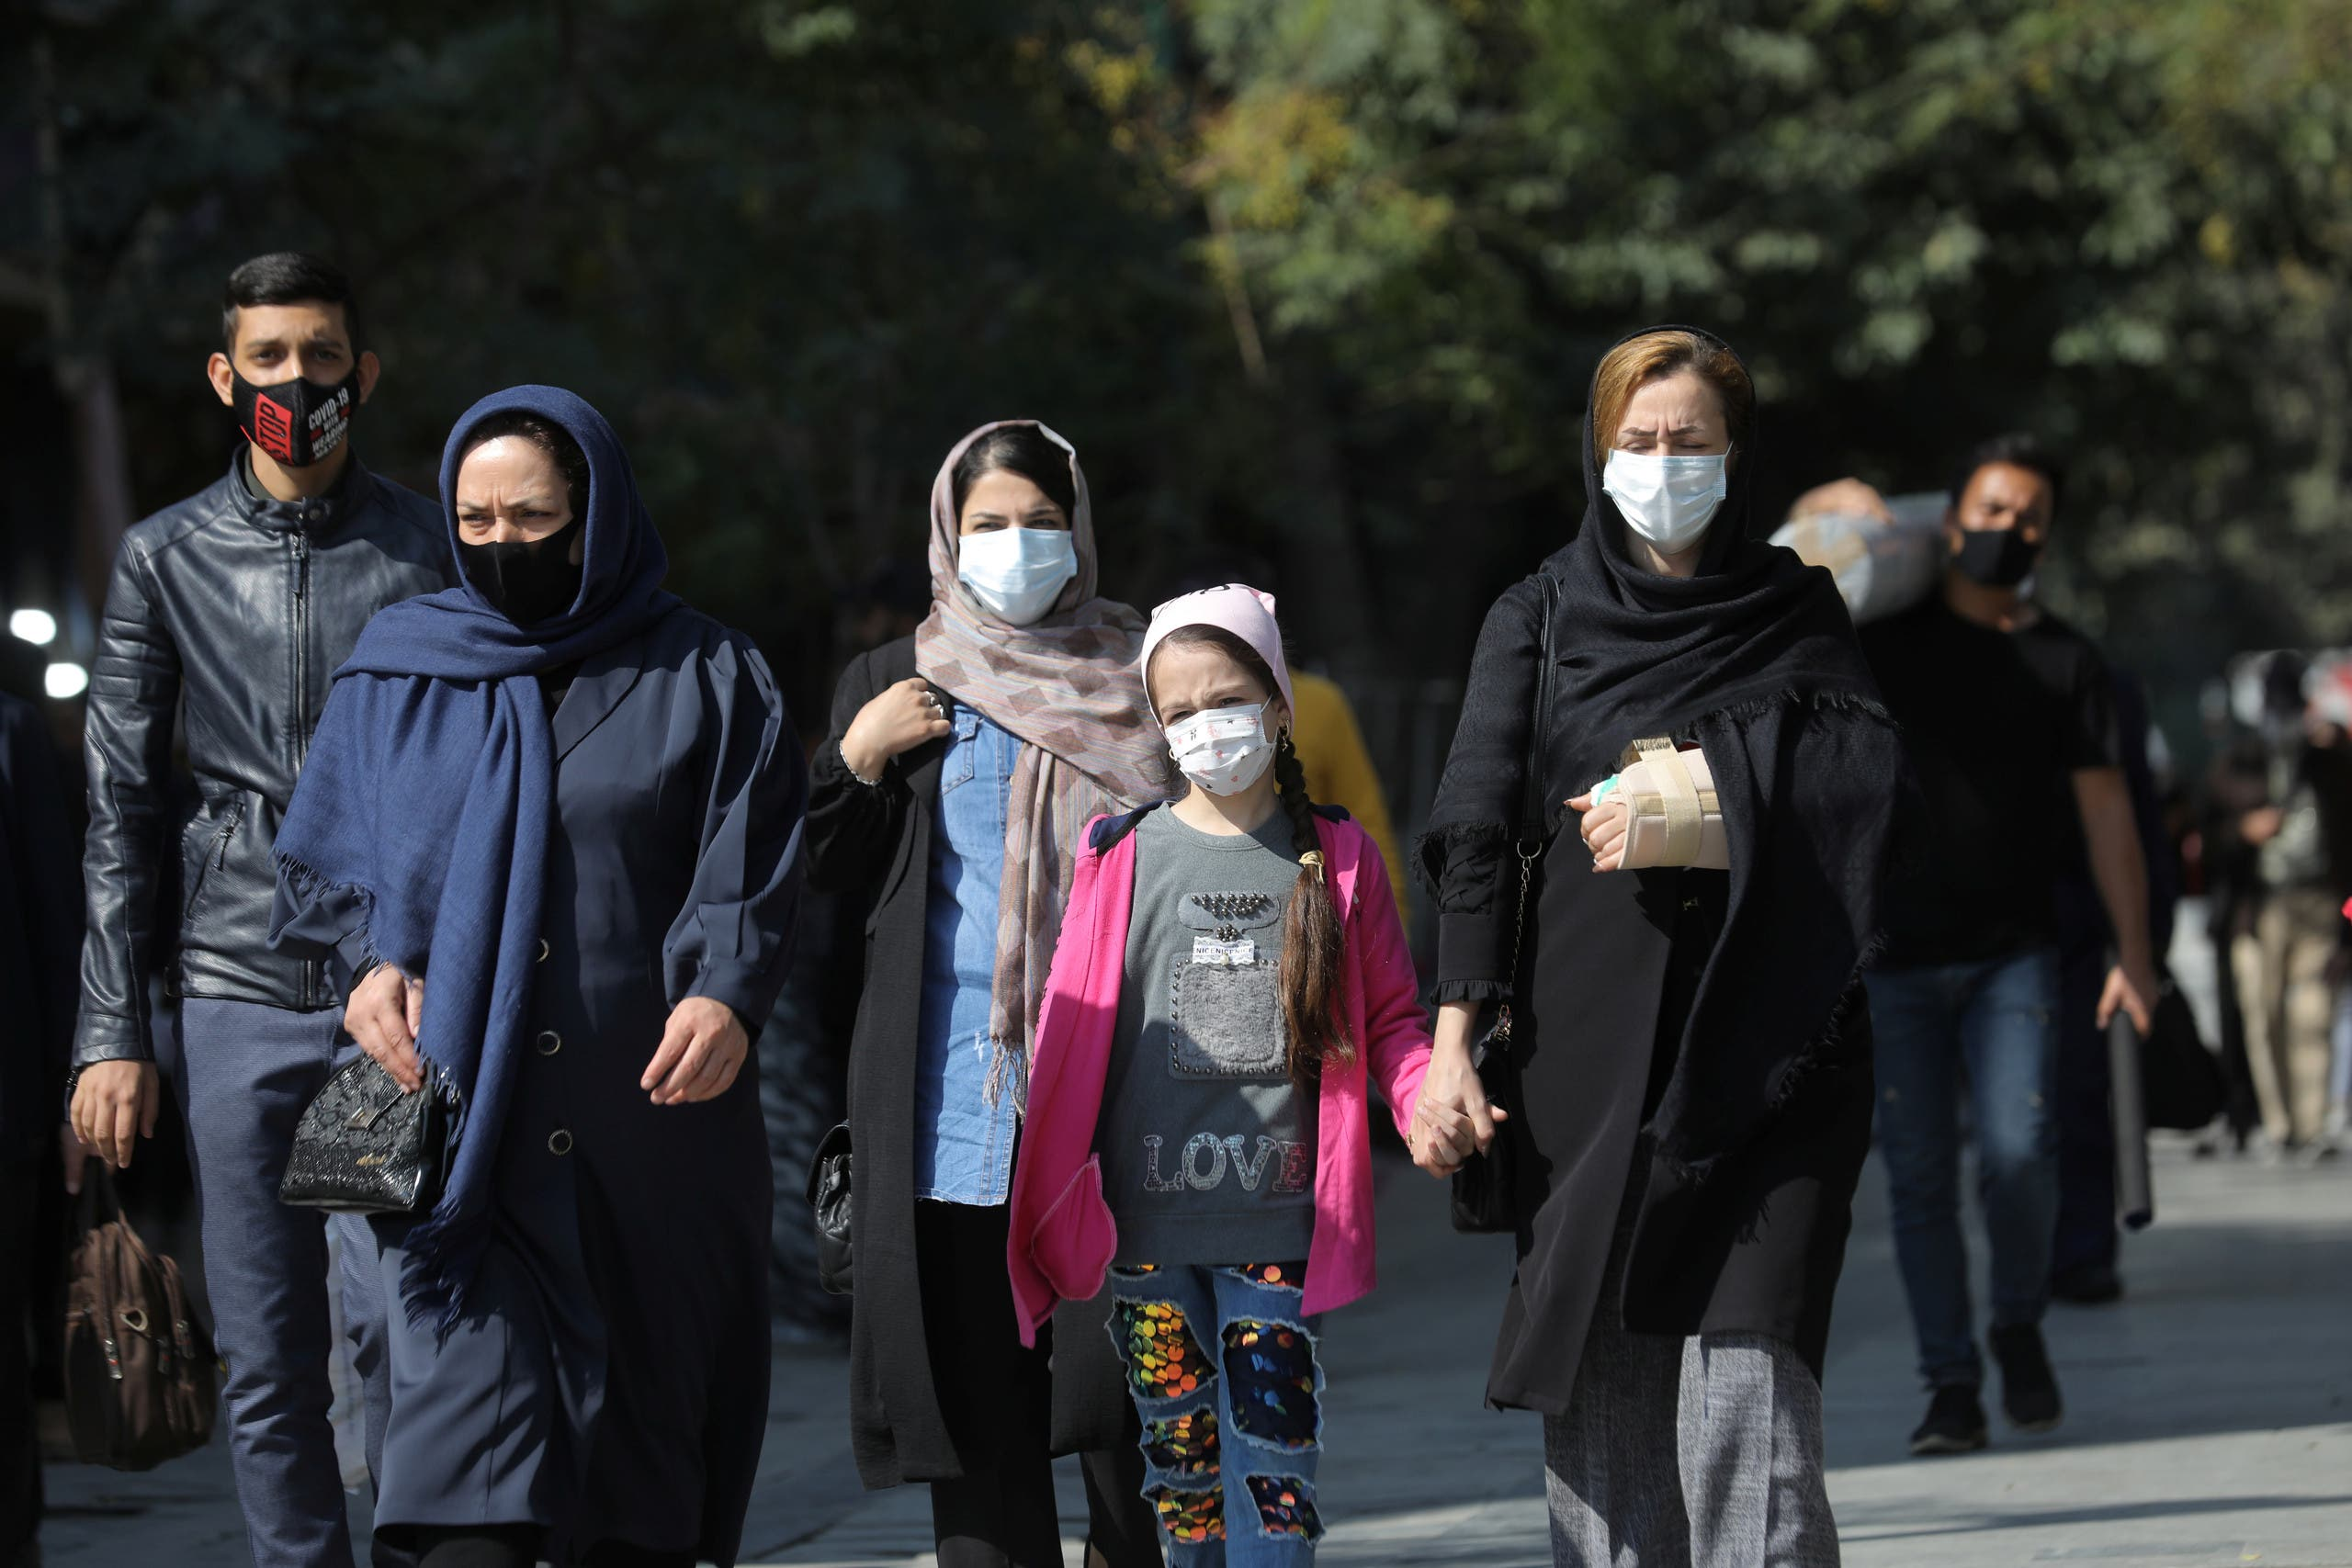 Iranians wearing face masks walk on a street after Iranian authorities made it mandatory for all to wear face masks in public following the outbreak of the coronavirus disease (COVID19), in Tehran Iran October 10, 2020. (Reuters)